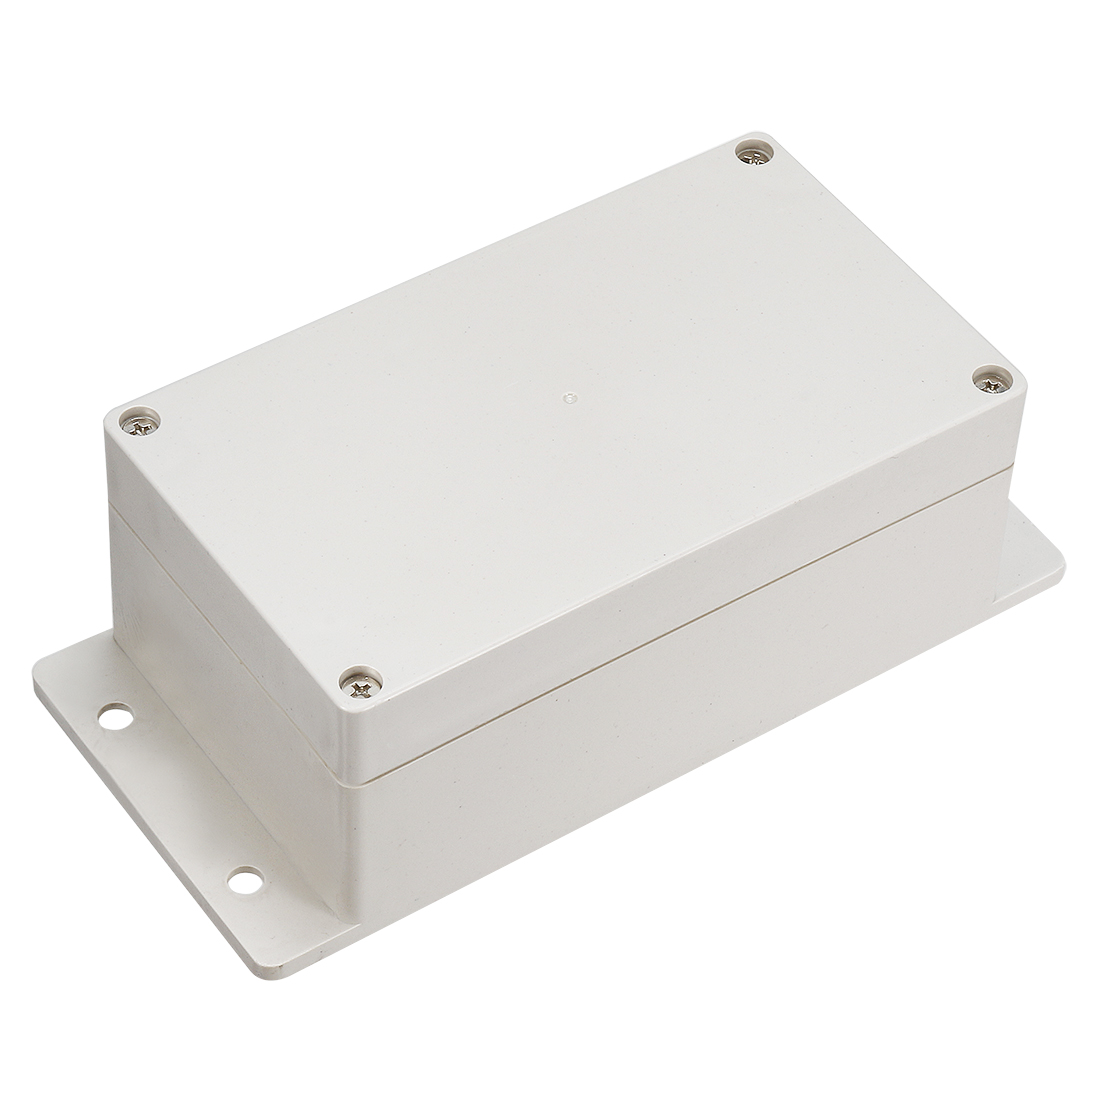 "6.1""x3.46""x2.56""(155mmx88mmx65mm) ABS Junction Box Universal Project Enclosure"